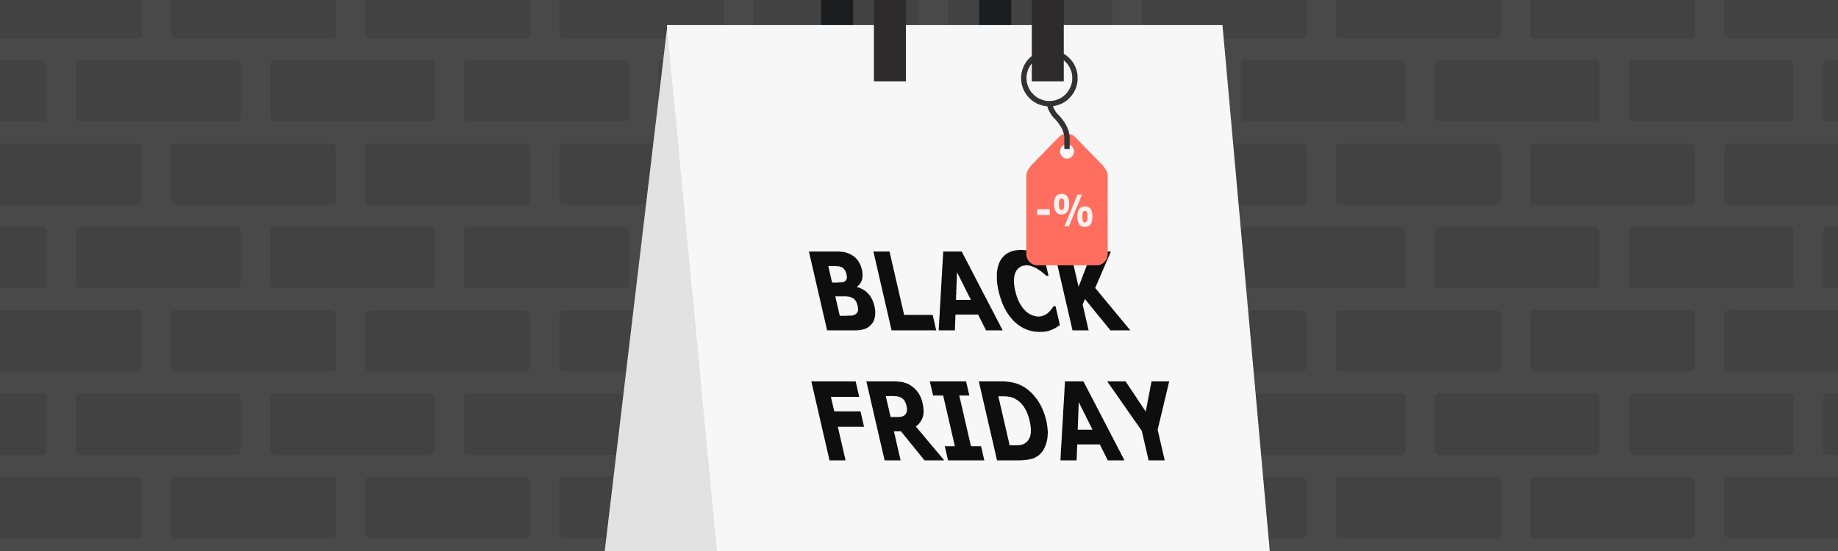 Black Friday Subject Lines The Ultimate Guide to Increase